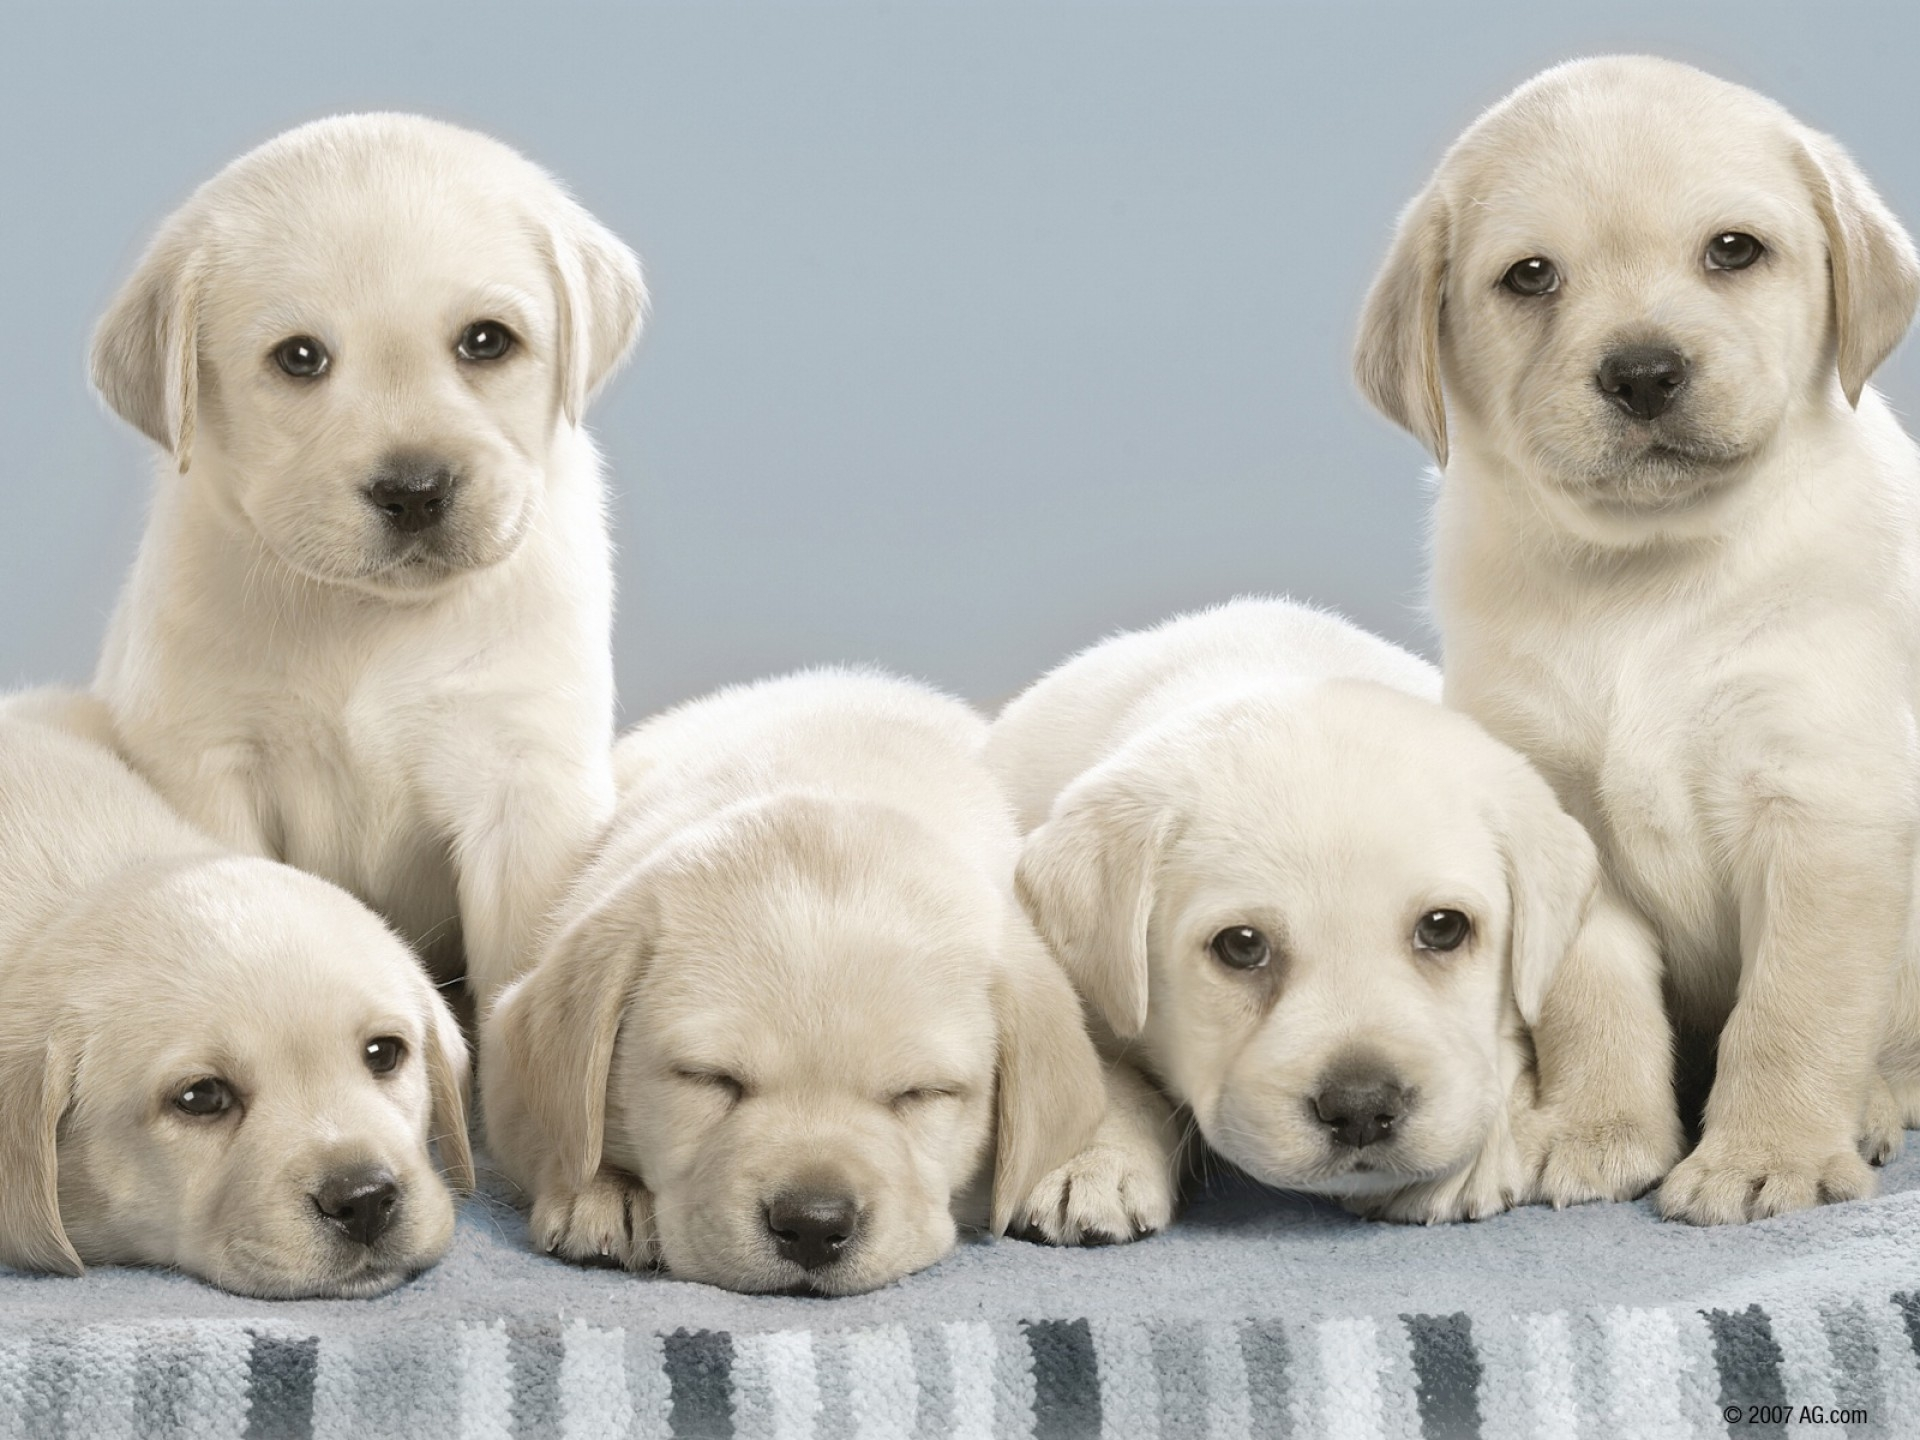 153949 download wallpaper Animals, Labradors, Puppies, Lot, Dogs screensavers and pictures for free